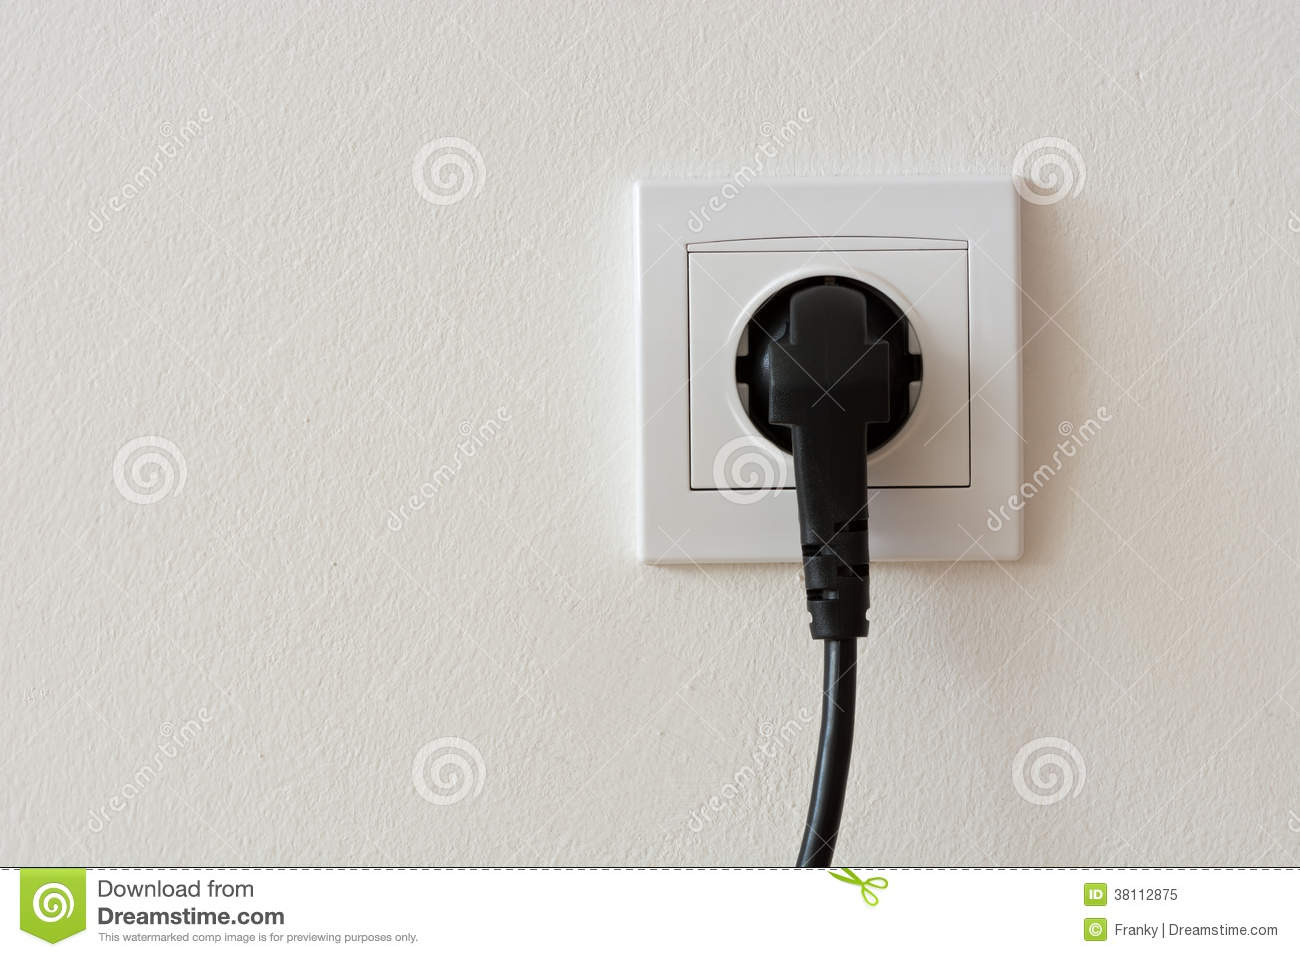 215 220 Volt Outlet Photos Free Royalty Free Stock Photos From Dreamstime